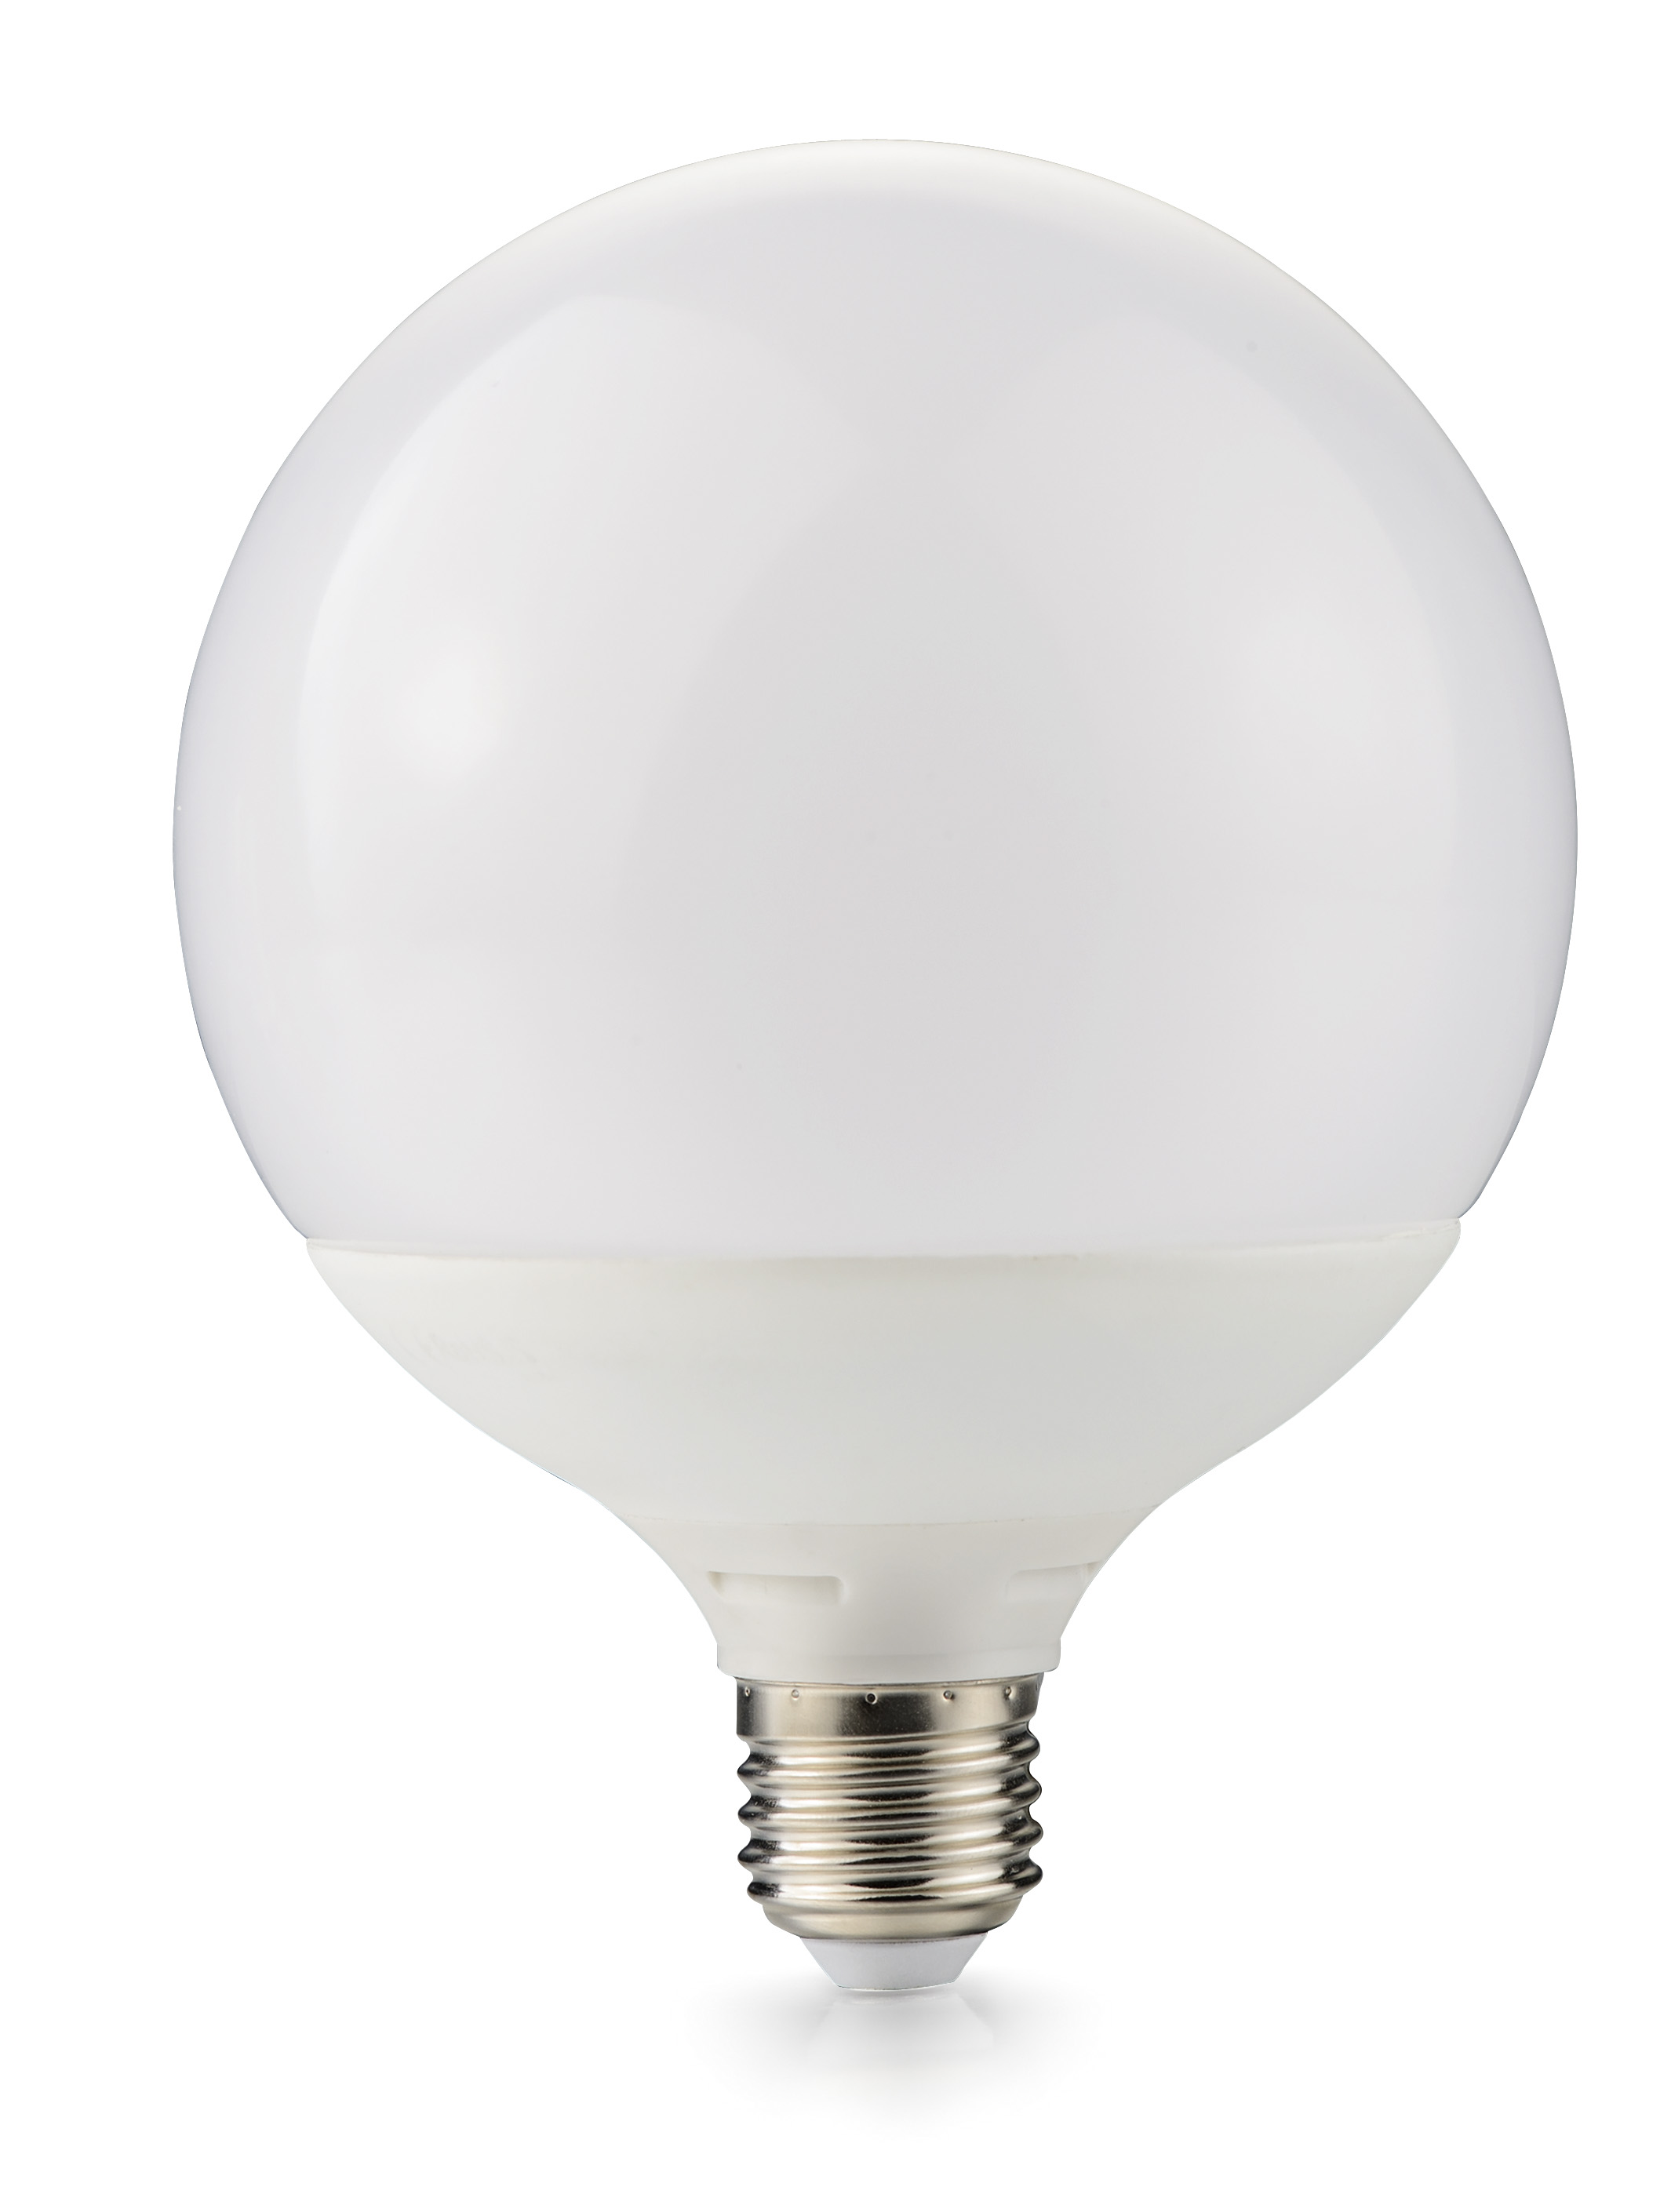 G120 15W E27 Aluminum and plastic global led bulb